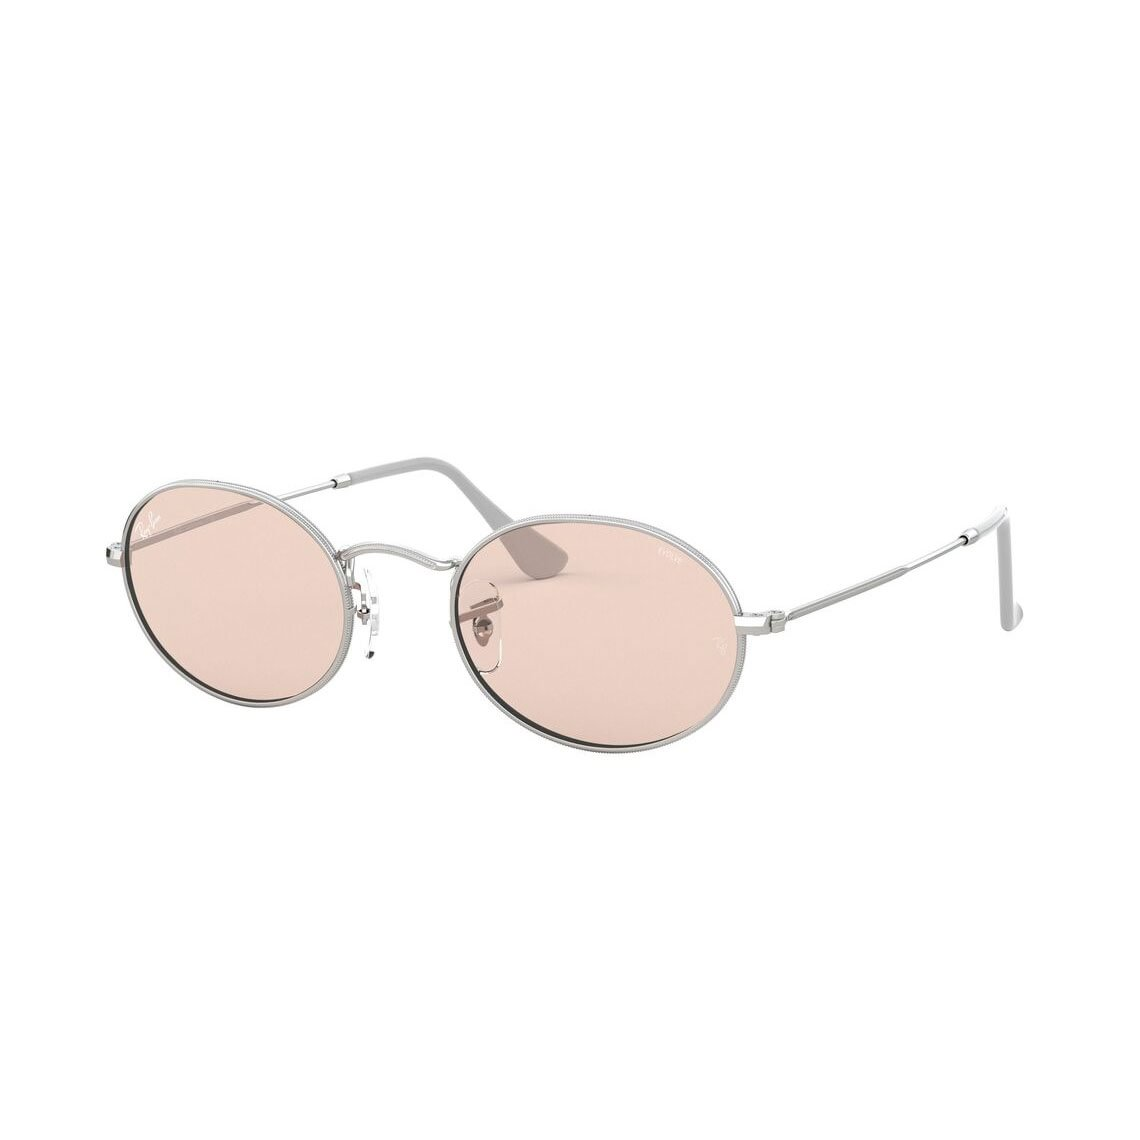 Ray-Ban Oval Solid Evolve RB3547 003/T5 5421